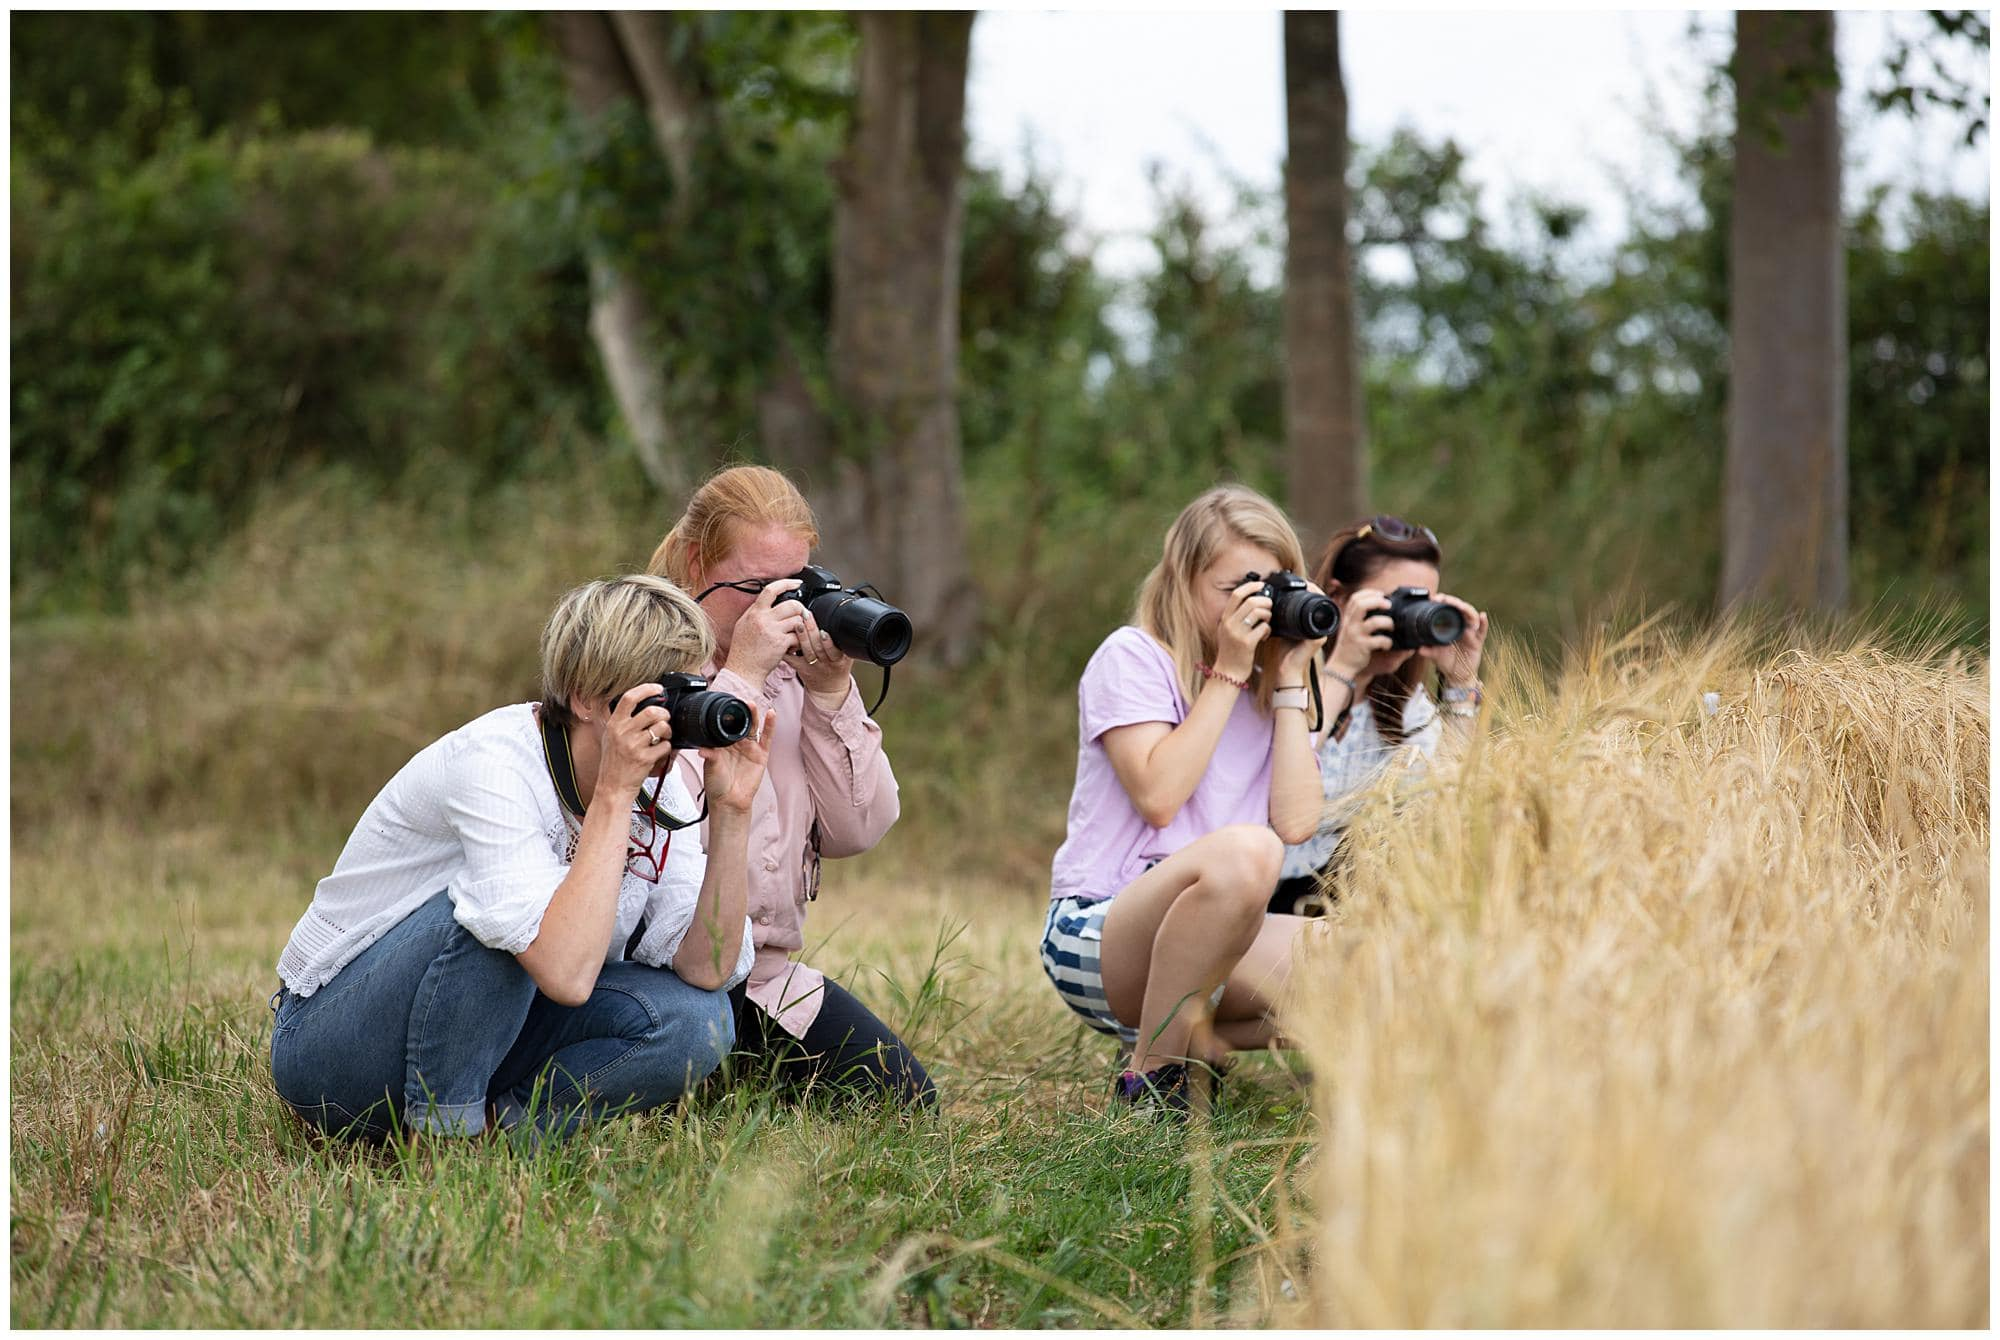 Four Female Photographers take photos with their camera's during a Beginners Photography Workshop in Stoke By Clare, Suffolk